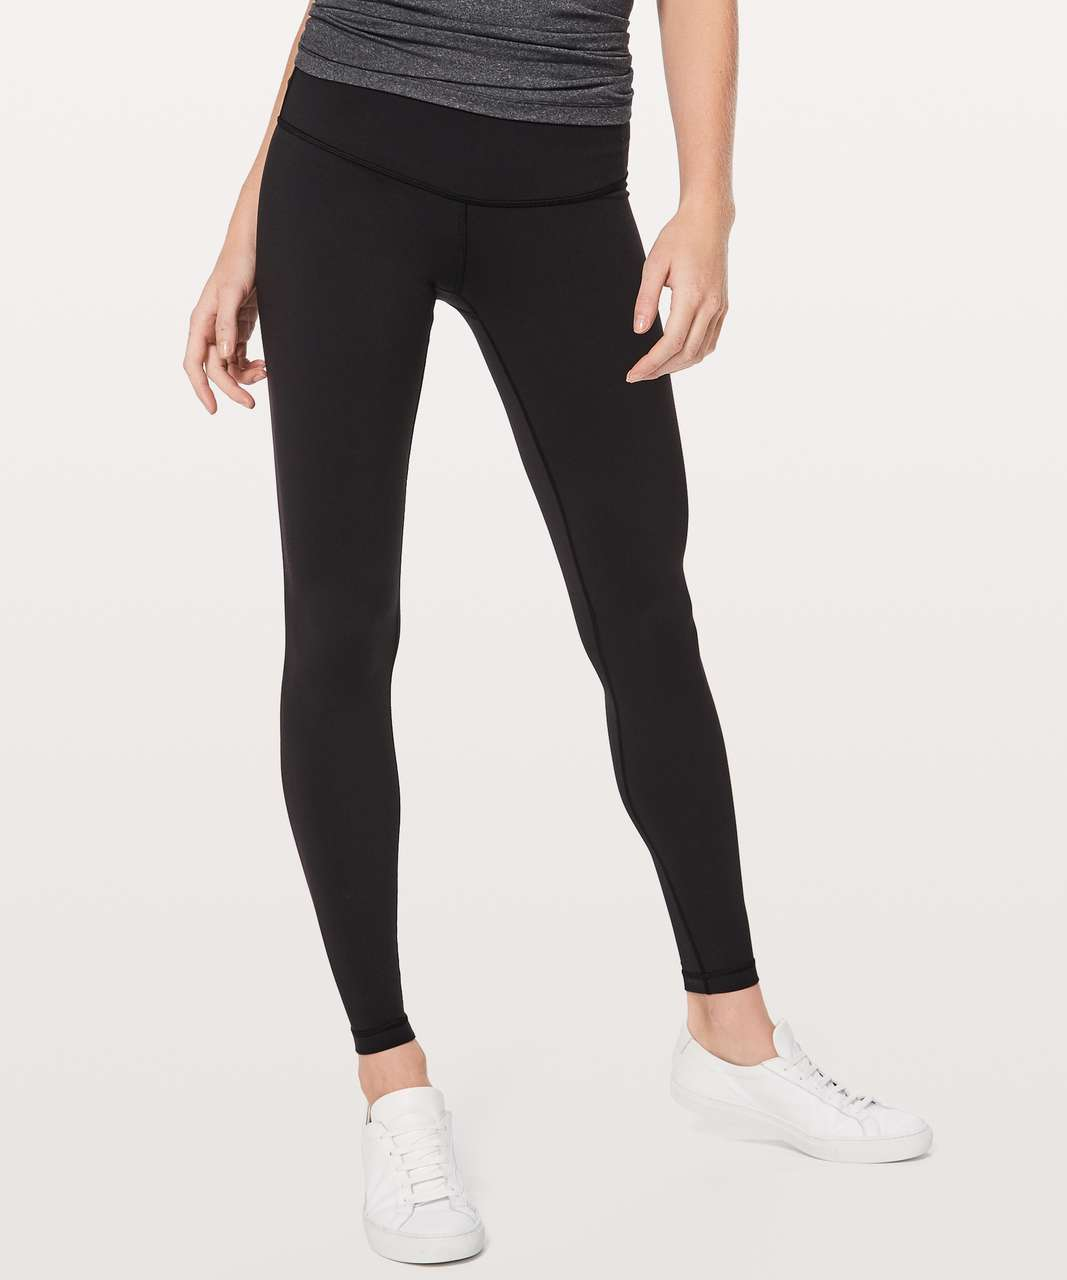 249c796324 Lululemon Wunder Under Low-Rise Tight Full-On Luon 28